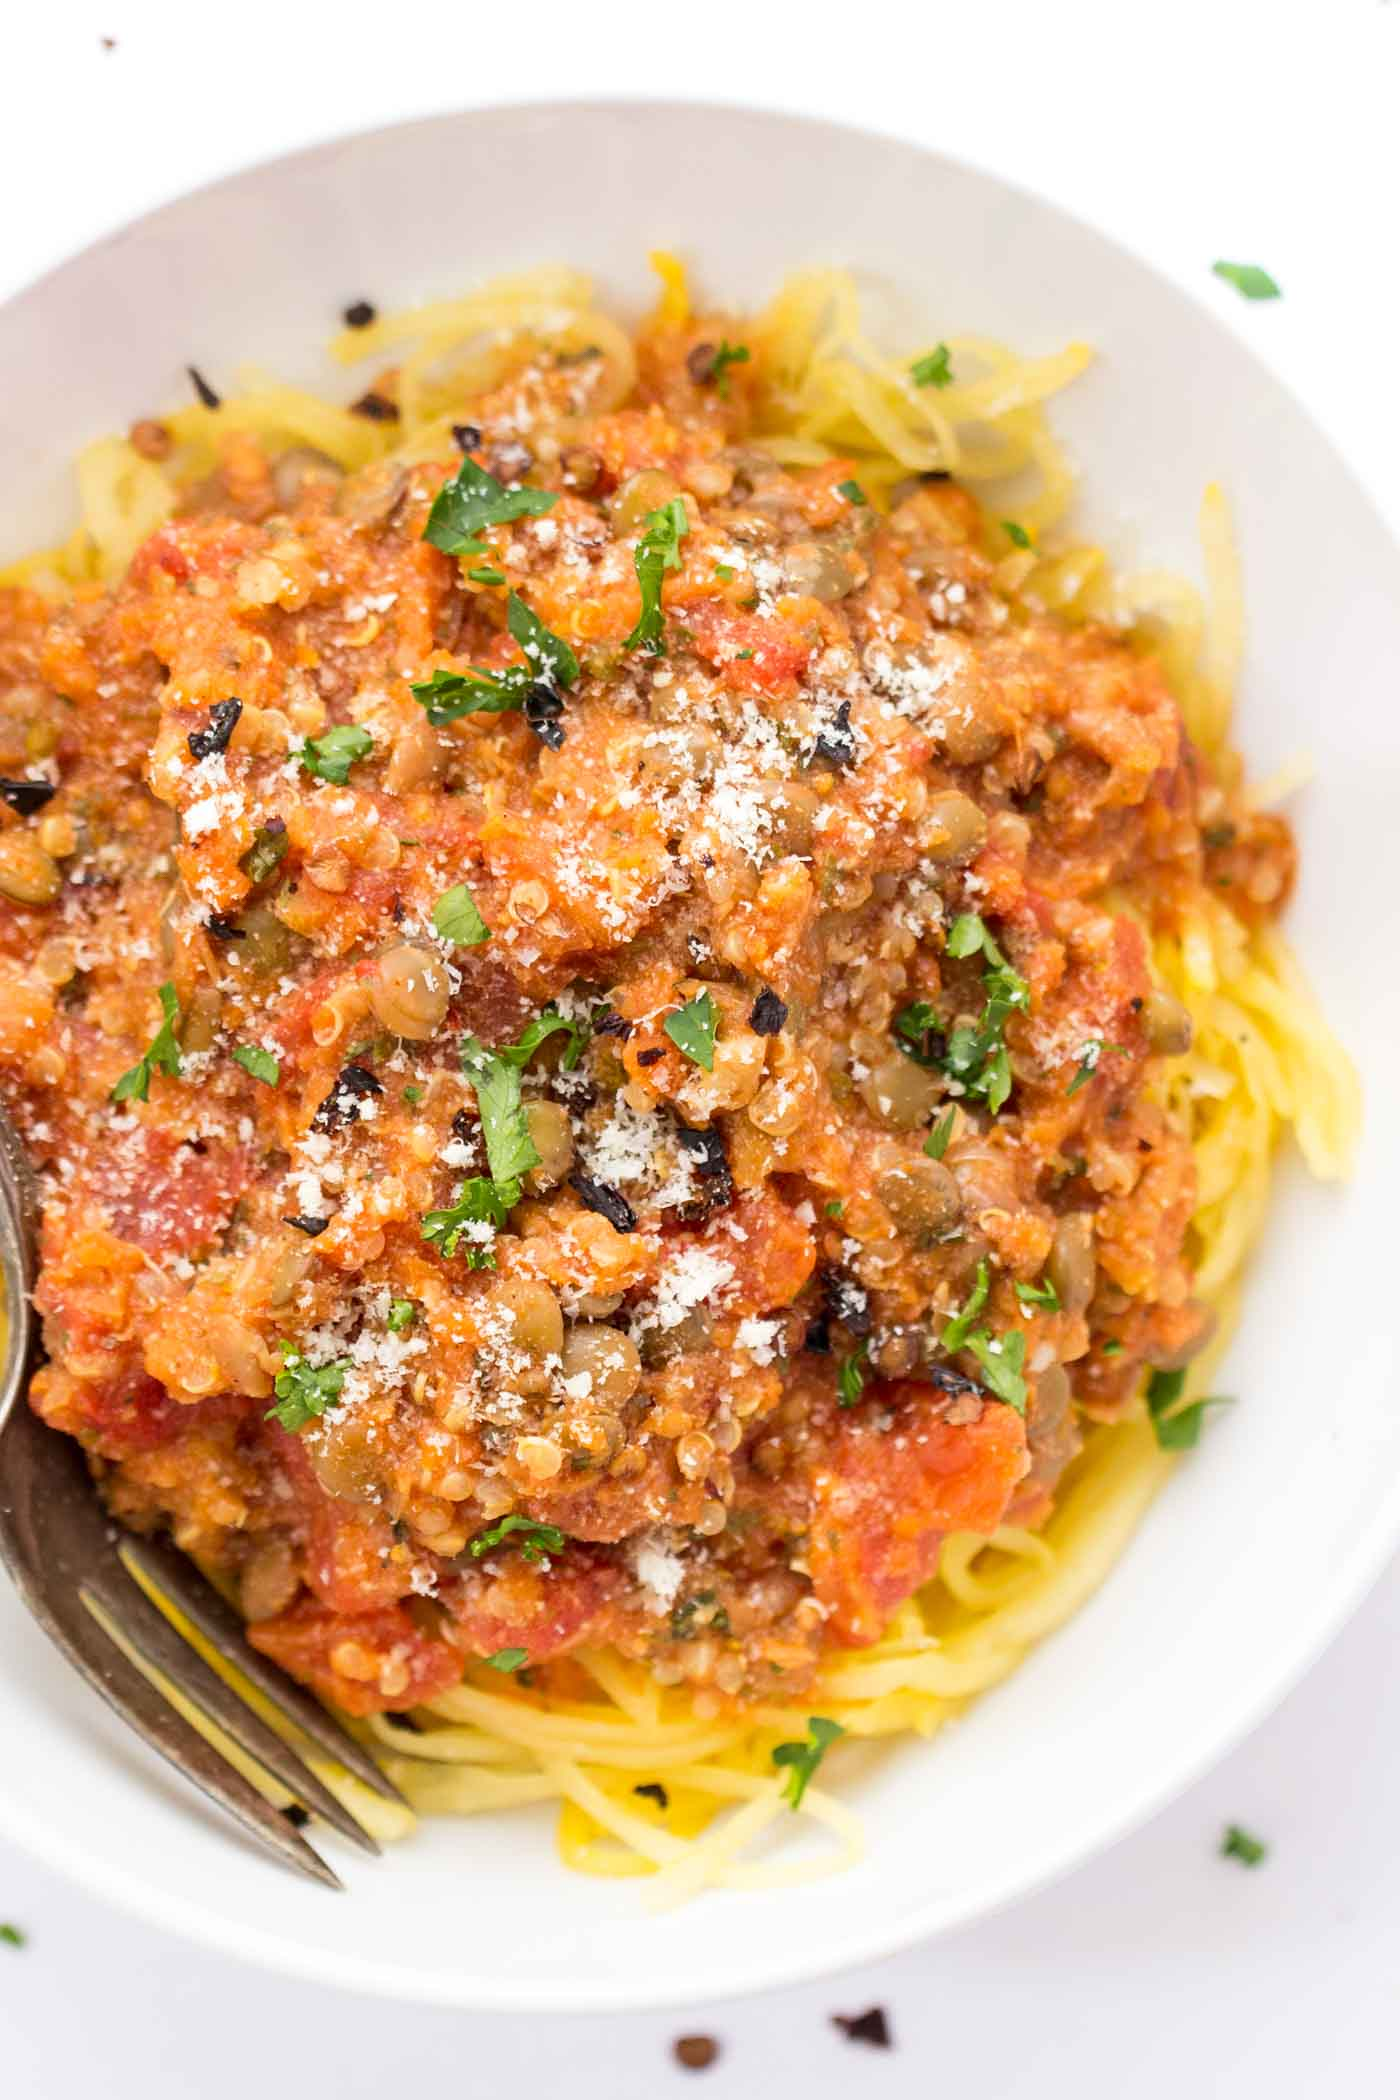 A hearty LENTIL BOLOGNESE sauce with quinoa and served over spaghetti squash -- perfect for meatless monday! [vegan + gf]